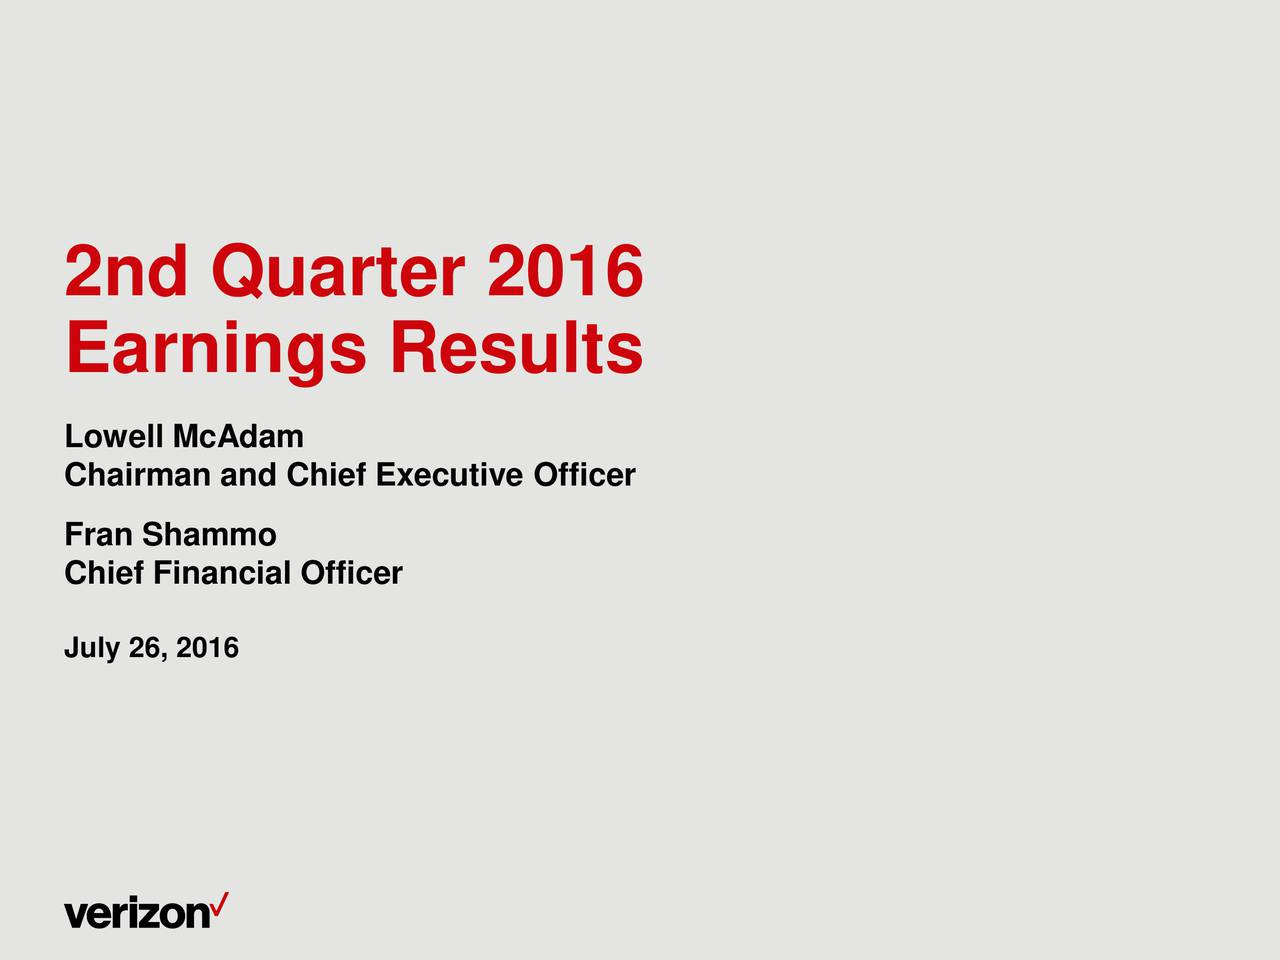 Earnings Results Lowell McAdam Chairman and Chief Executive Officer Fran Shammo Chief Financial Officer July 26, 2016